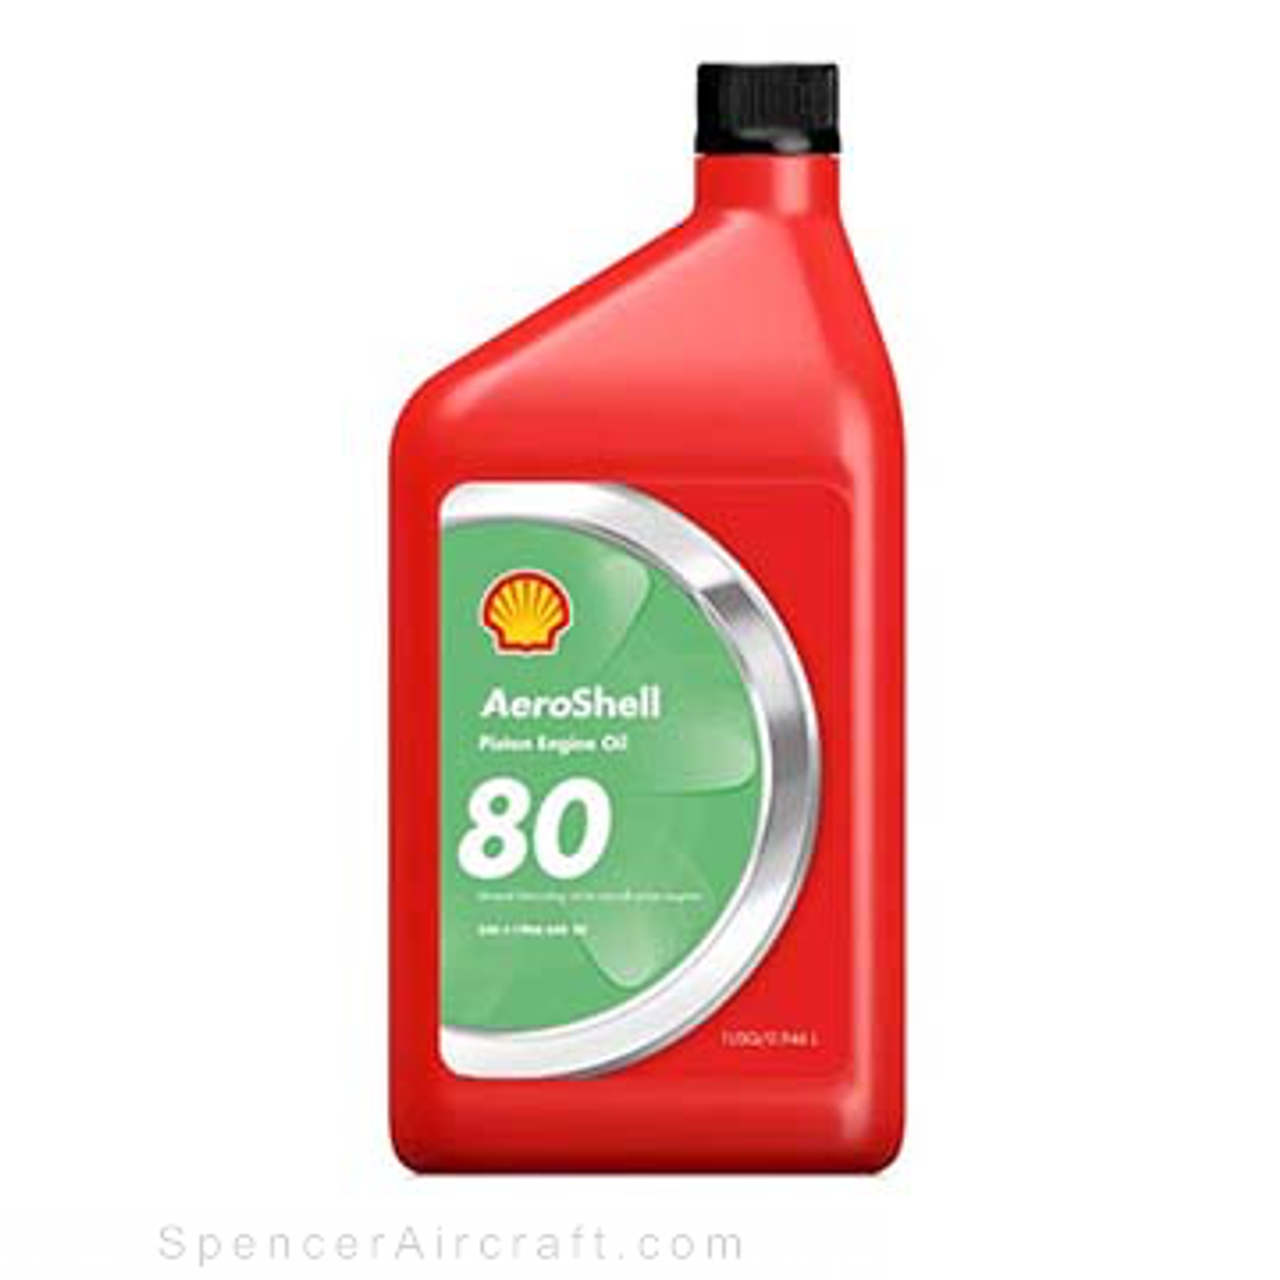 AeroShell Oil 80 SAE 40 Straight Mineral Oil - 12 Quart Case